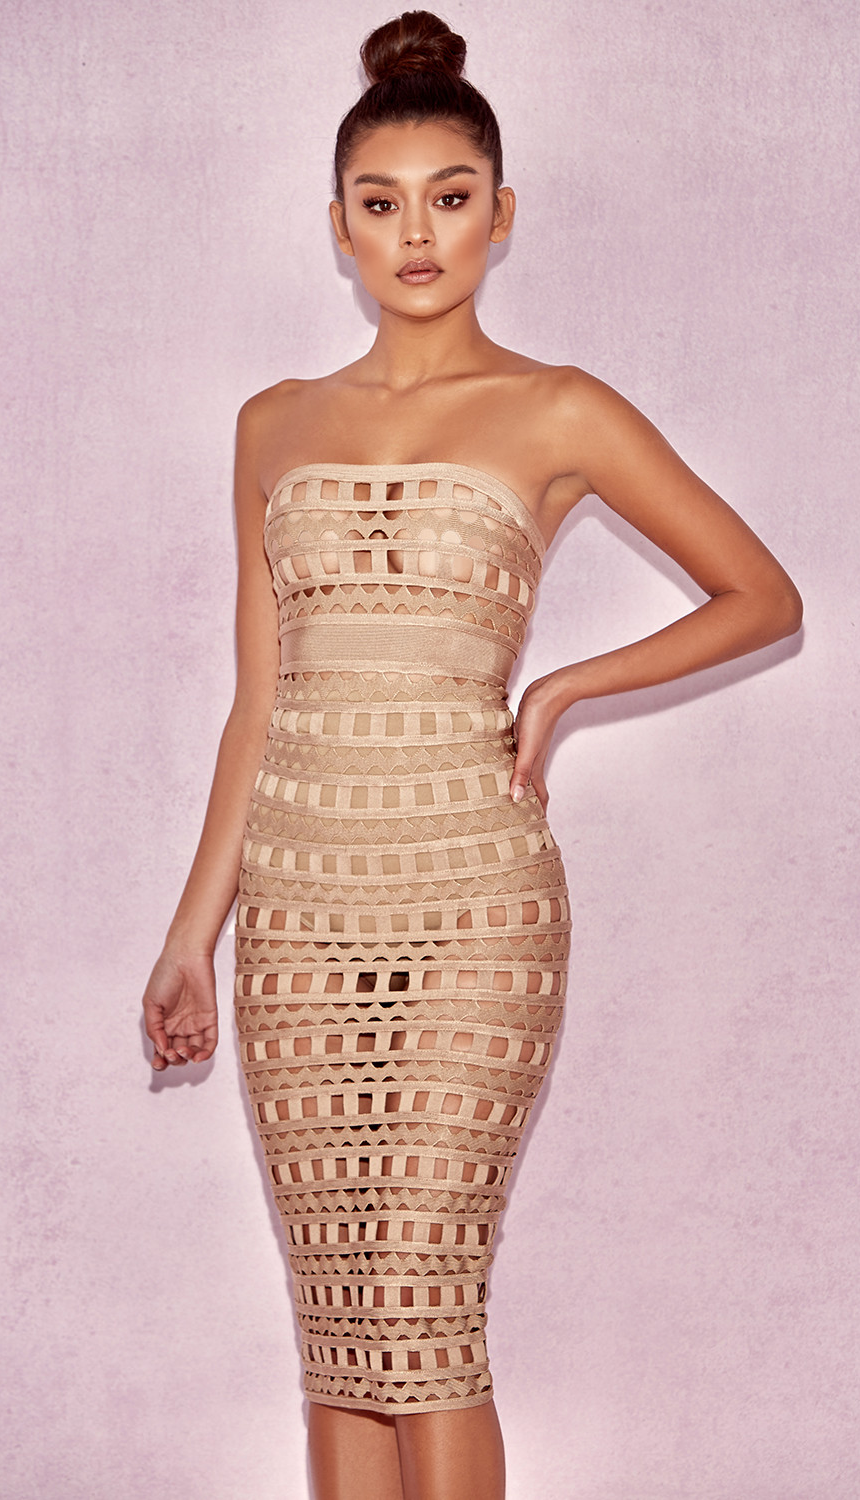 HOUSE OF CB 'DEMELZA' NUDE OPENWORK STRAPLESS MIDI DRESS